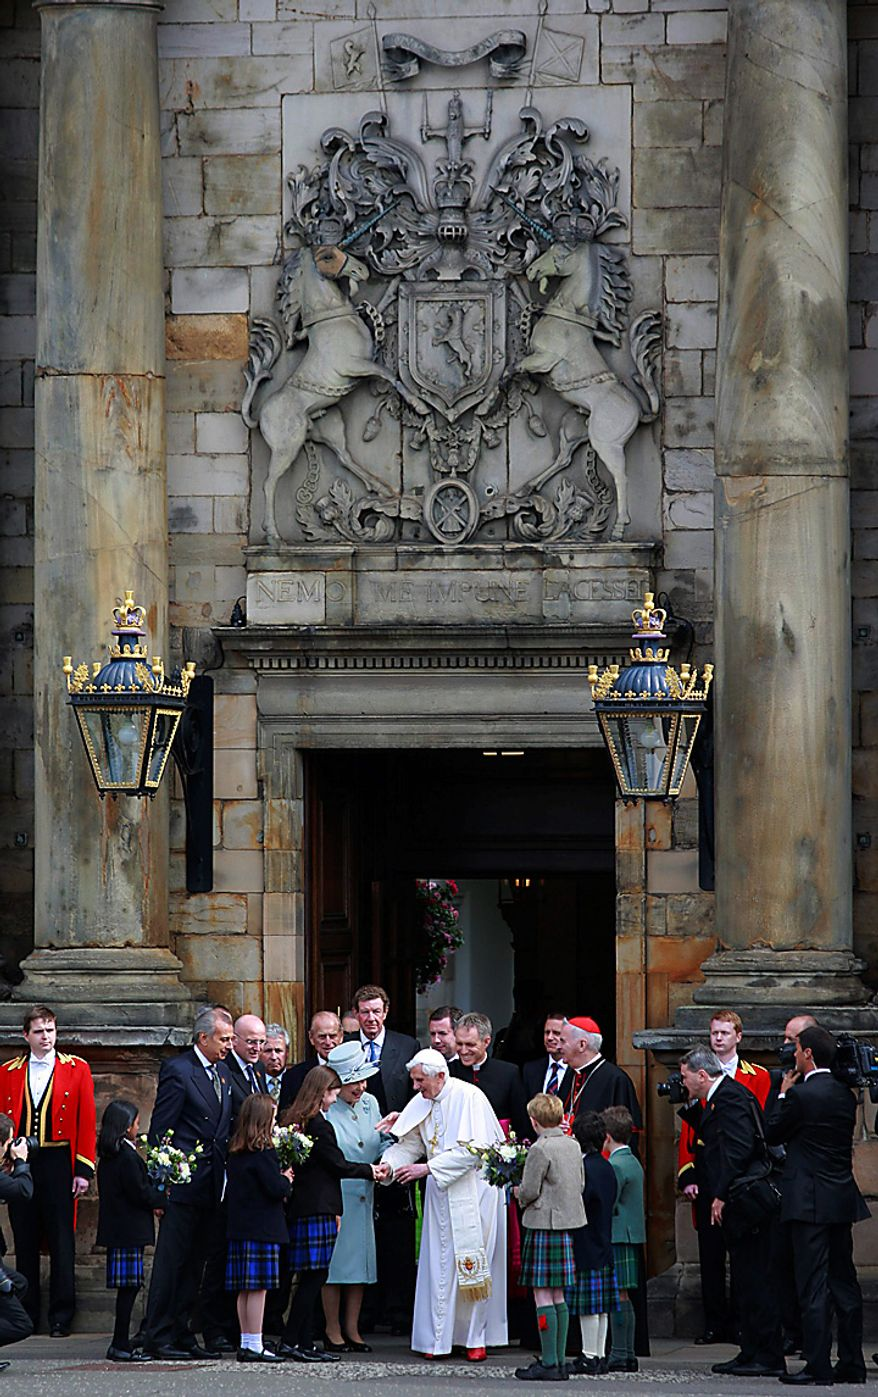 Britain's Queen Elizabeth II, bottom left, accompanies Pope Benedict XVI, right, as he receives flowers from children while leaving the Palace of Holyroodhouse, in Edinburgh, Scotland, Thursday Sept. 16, 2010. (AP Photo/Lefteris Pitarakis, pool)